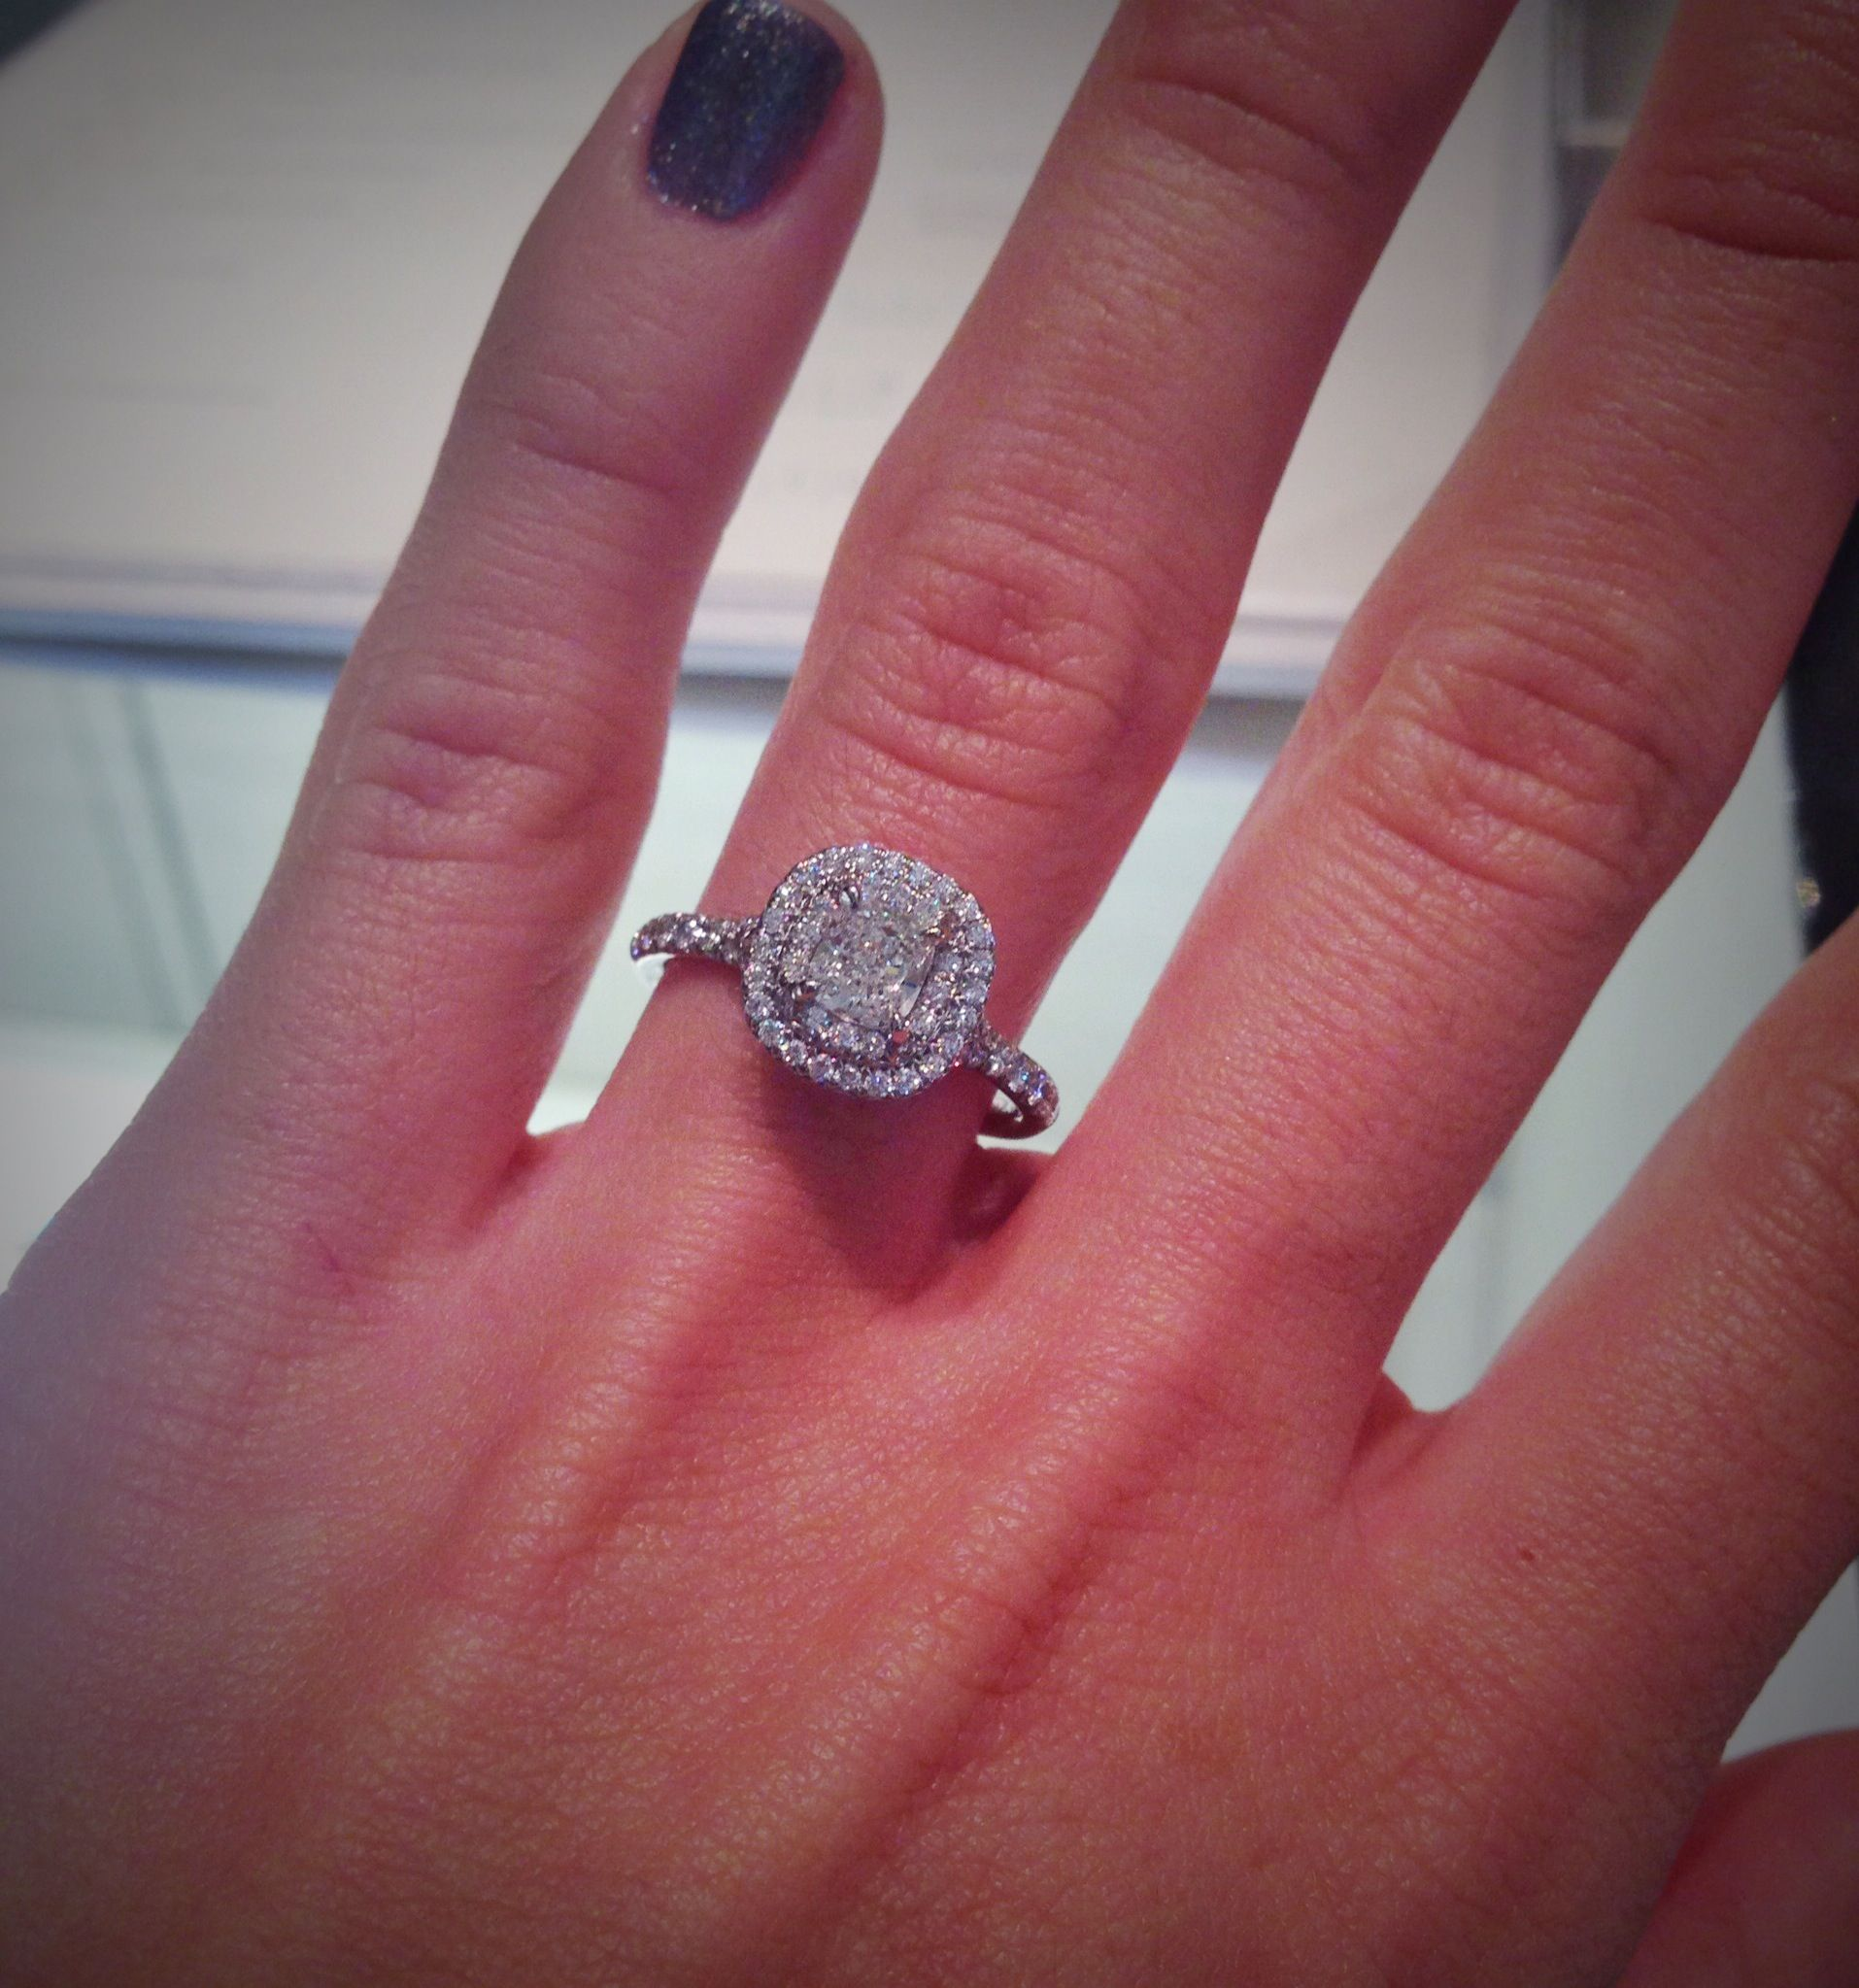 Tiffany\'s Engagement Ring. DREAM RING. | Engagement rings ...